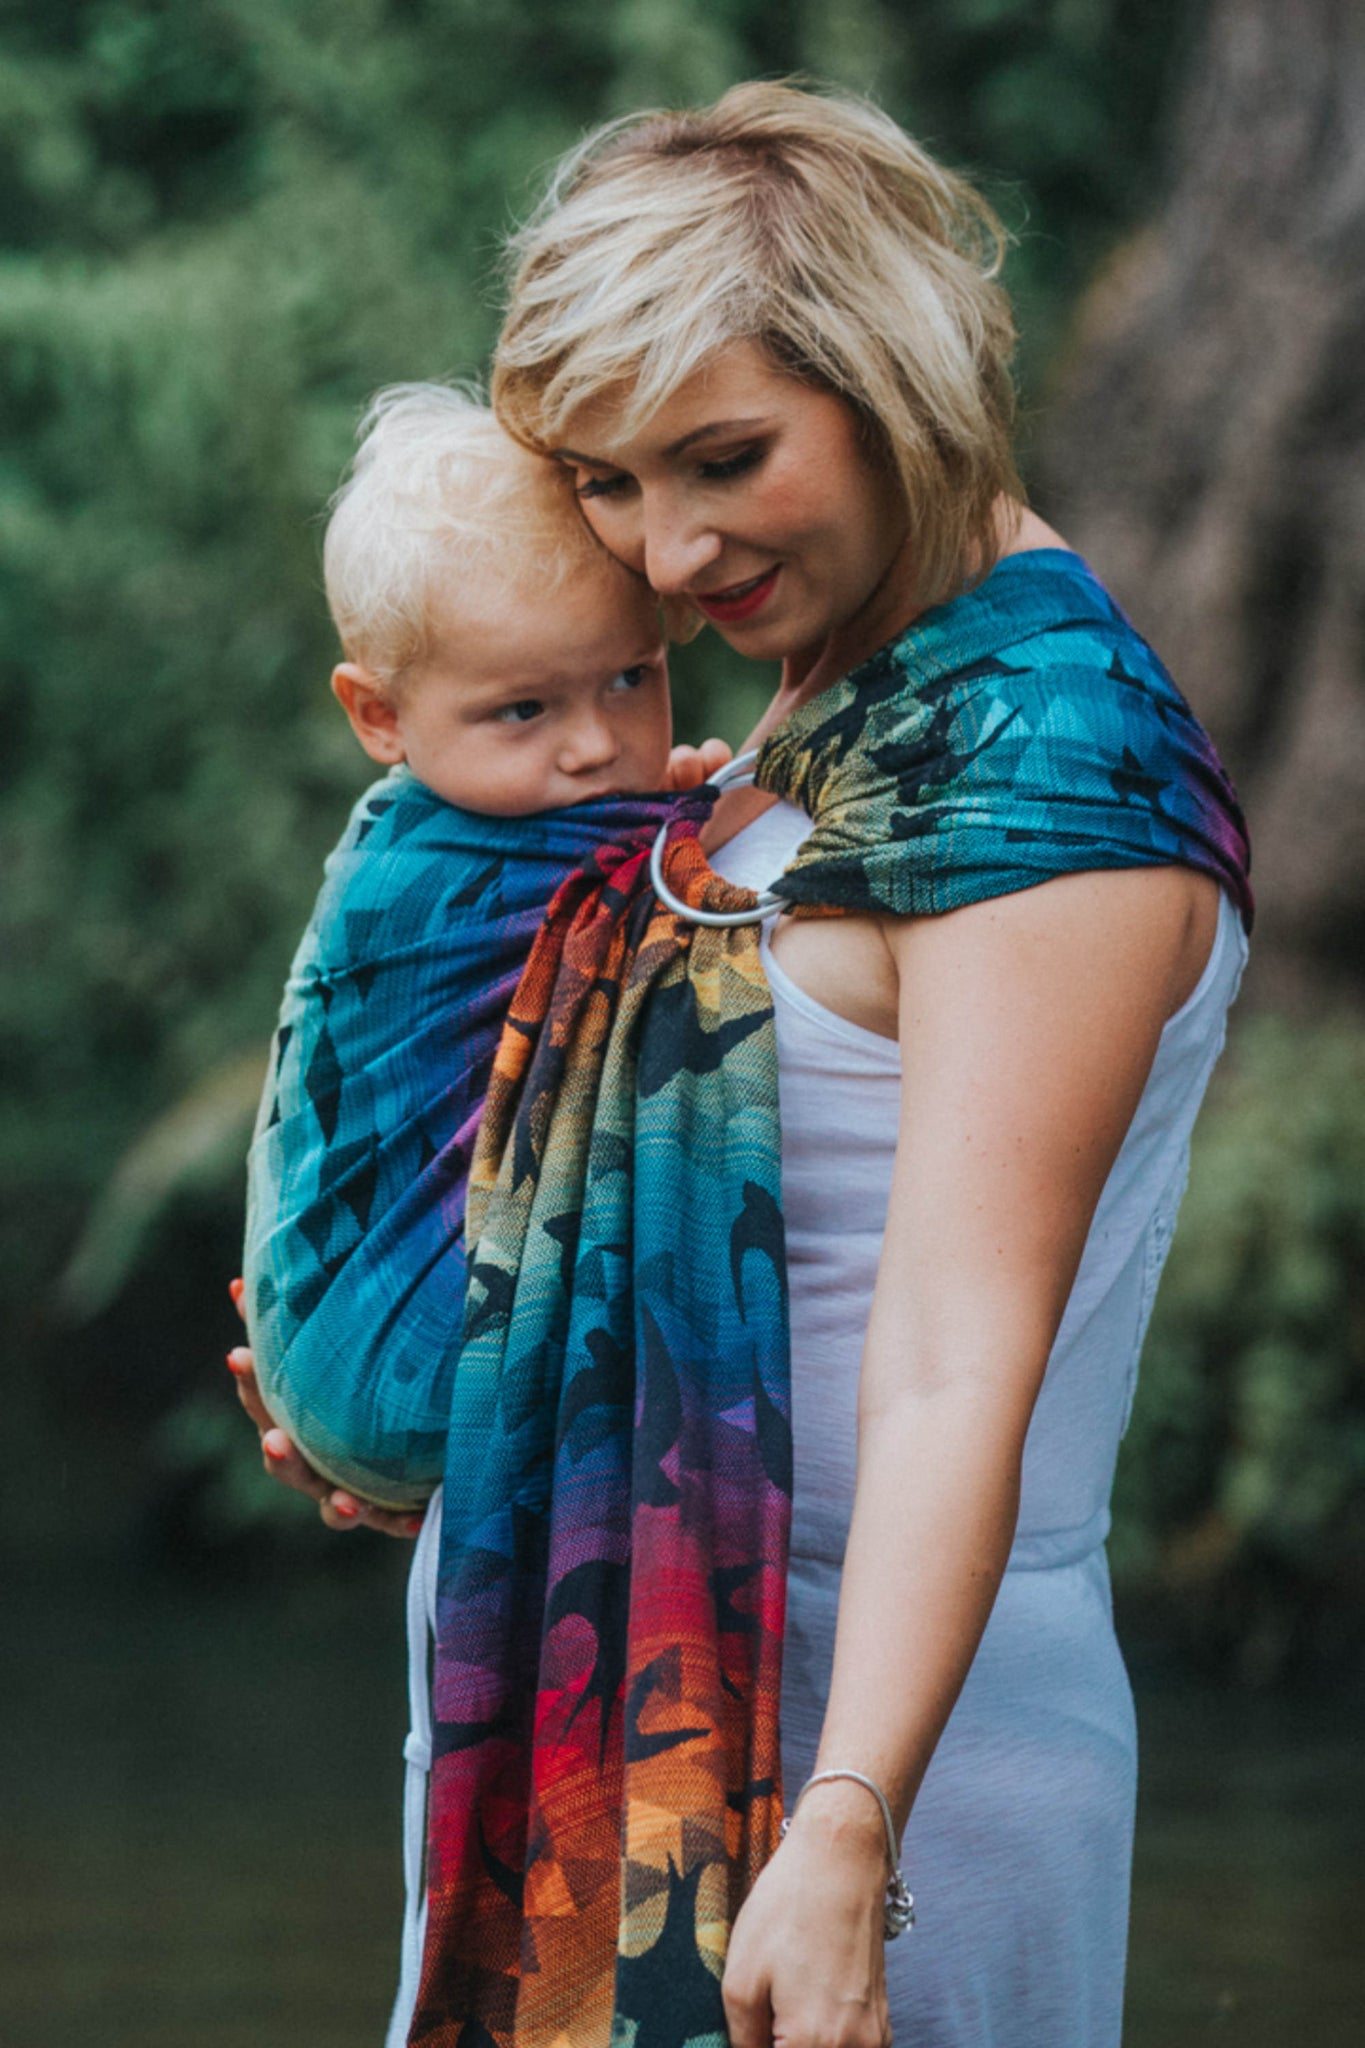 Ringsling, Jacquard Weave (100% cotton), with gathered shoulder - SWALLOWS RAINBOW DARK - standard 1.8m